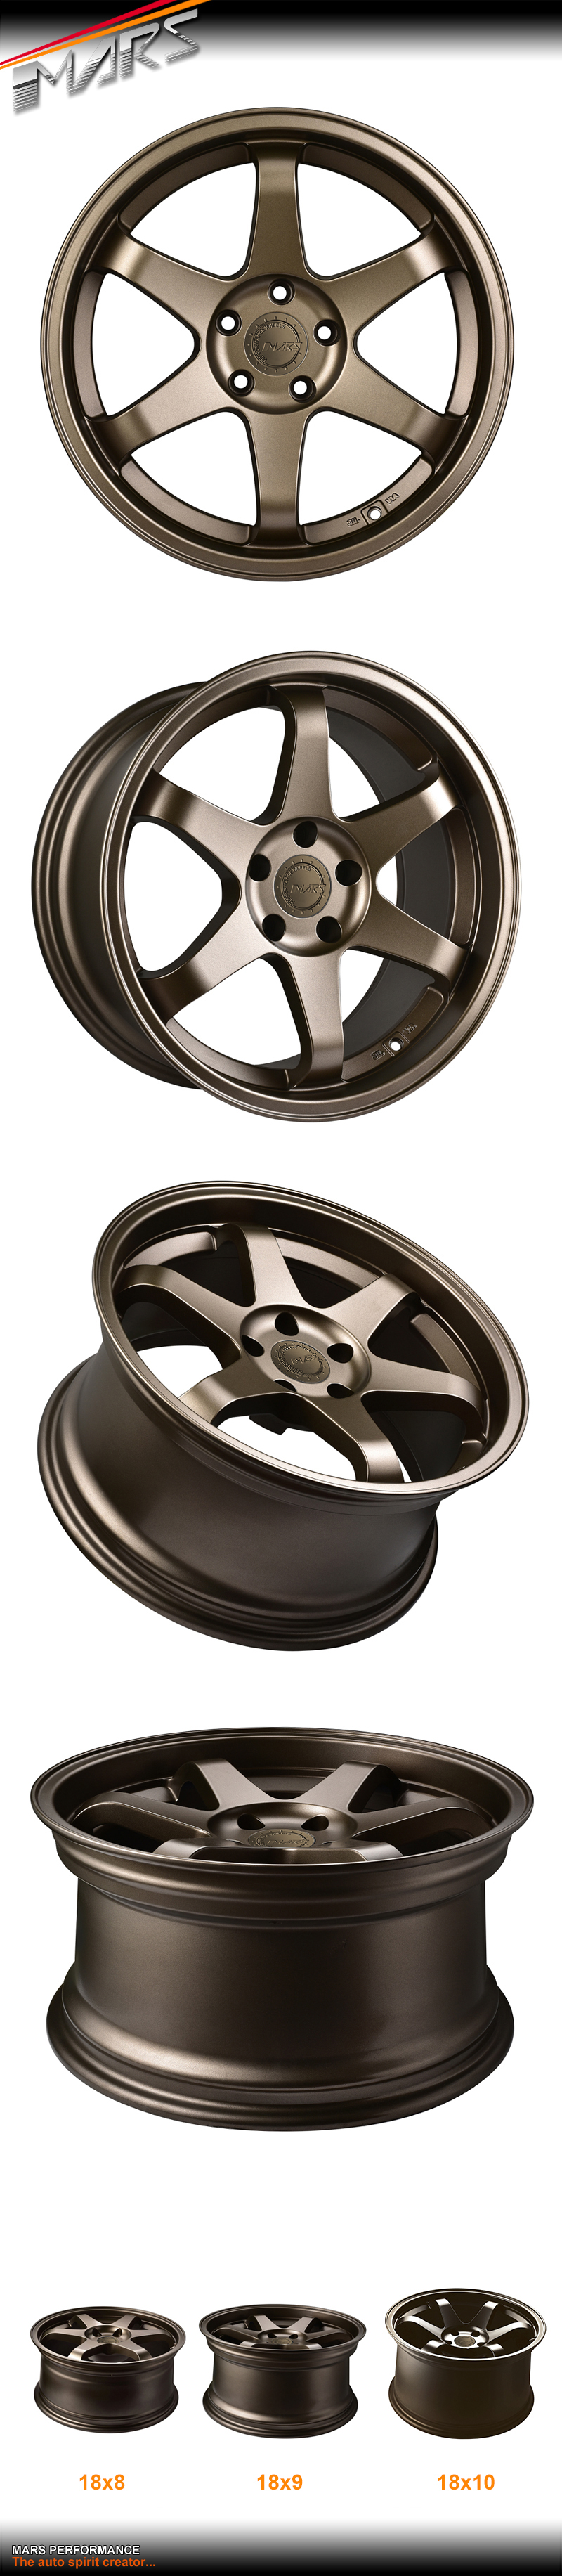 Mars mp inch bronze alloy wheels rims e